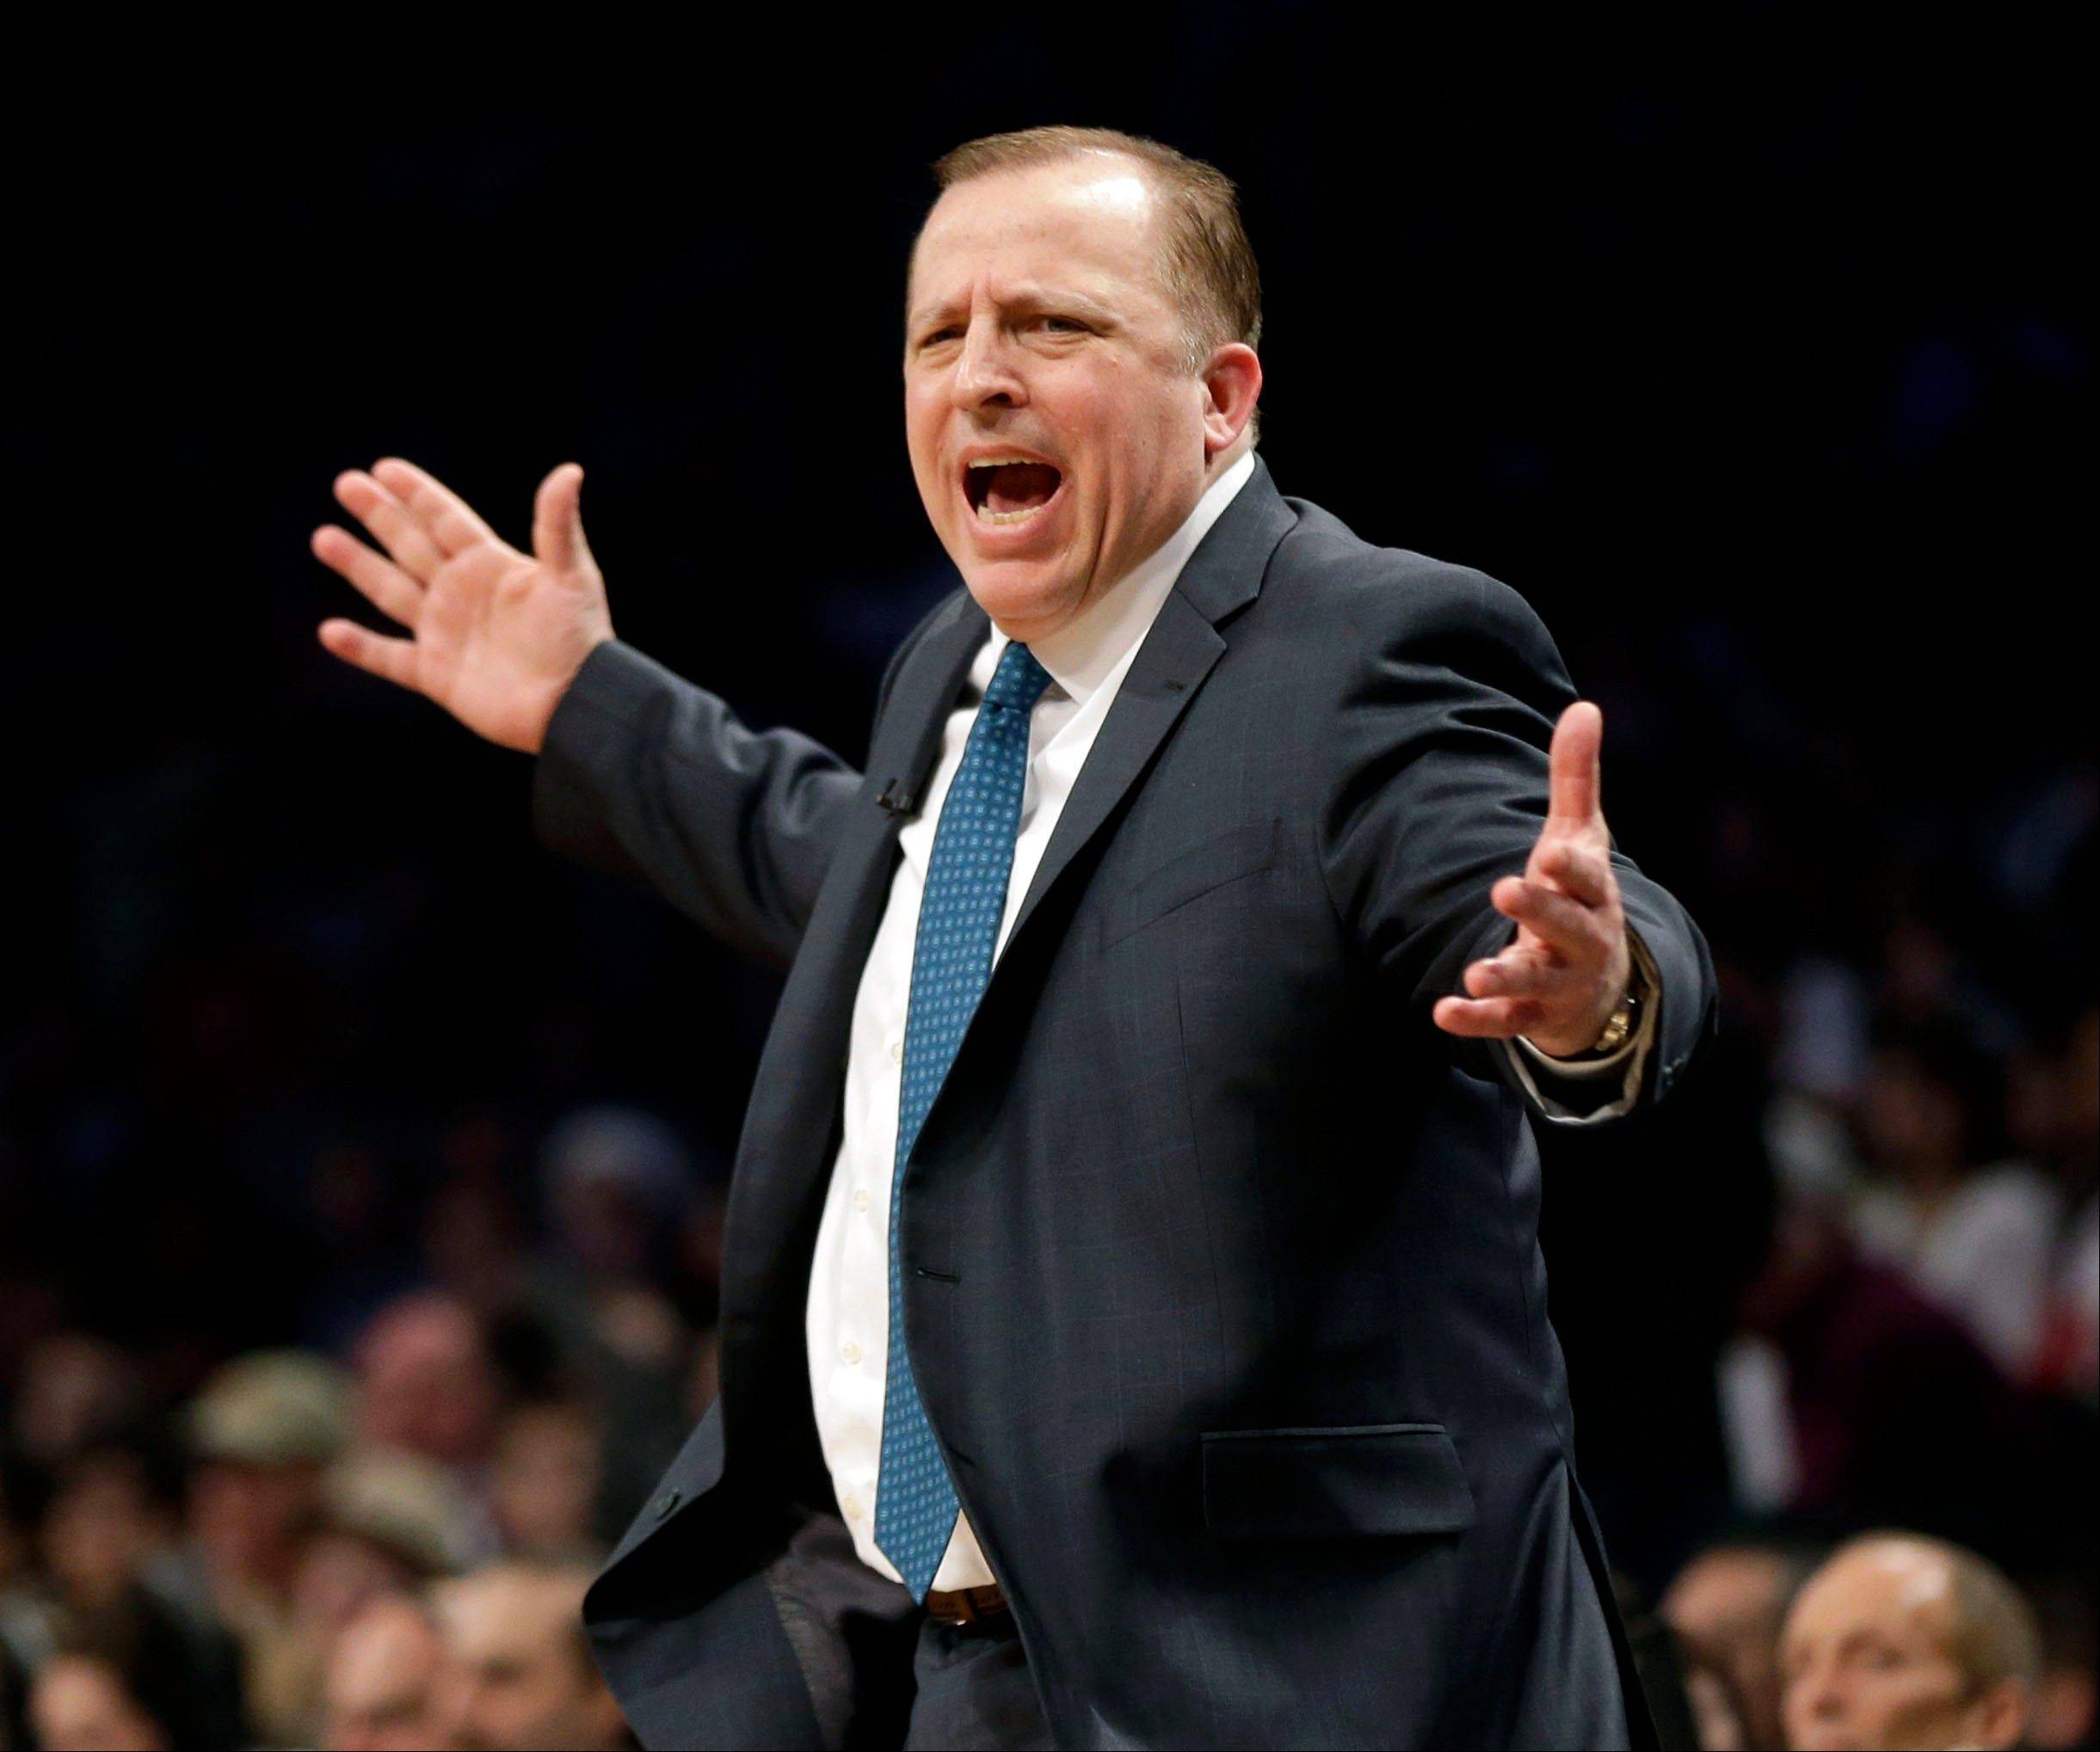 Can you imagine Bulls coach Tom Thibodeau smniling with a 9-point deficit? Can you imagine him smiling with a 9-point lead, or a nine-game winning streak? Mike Imrem ponders the questions.